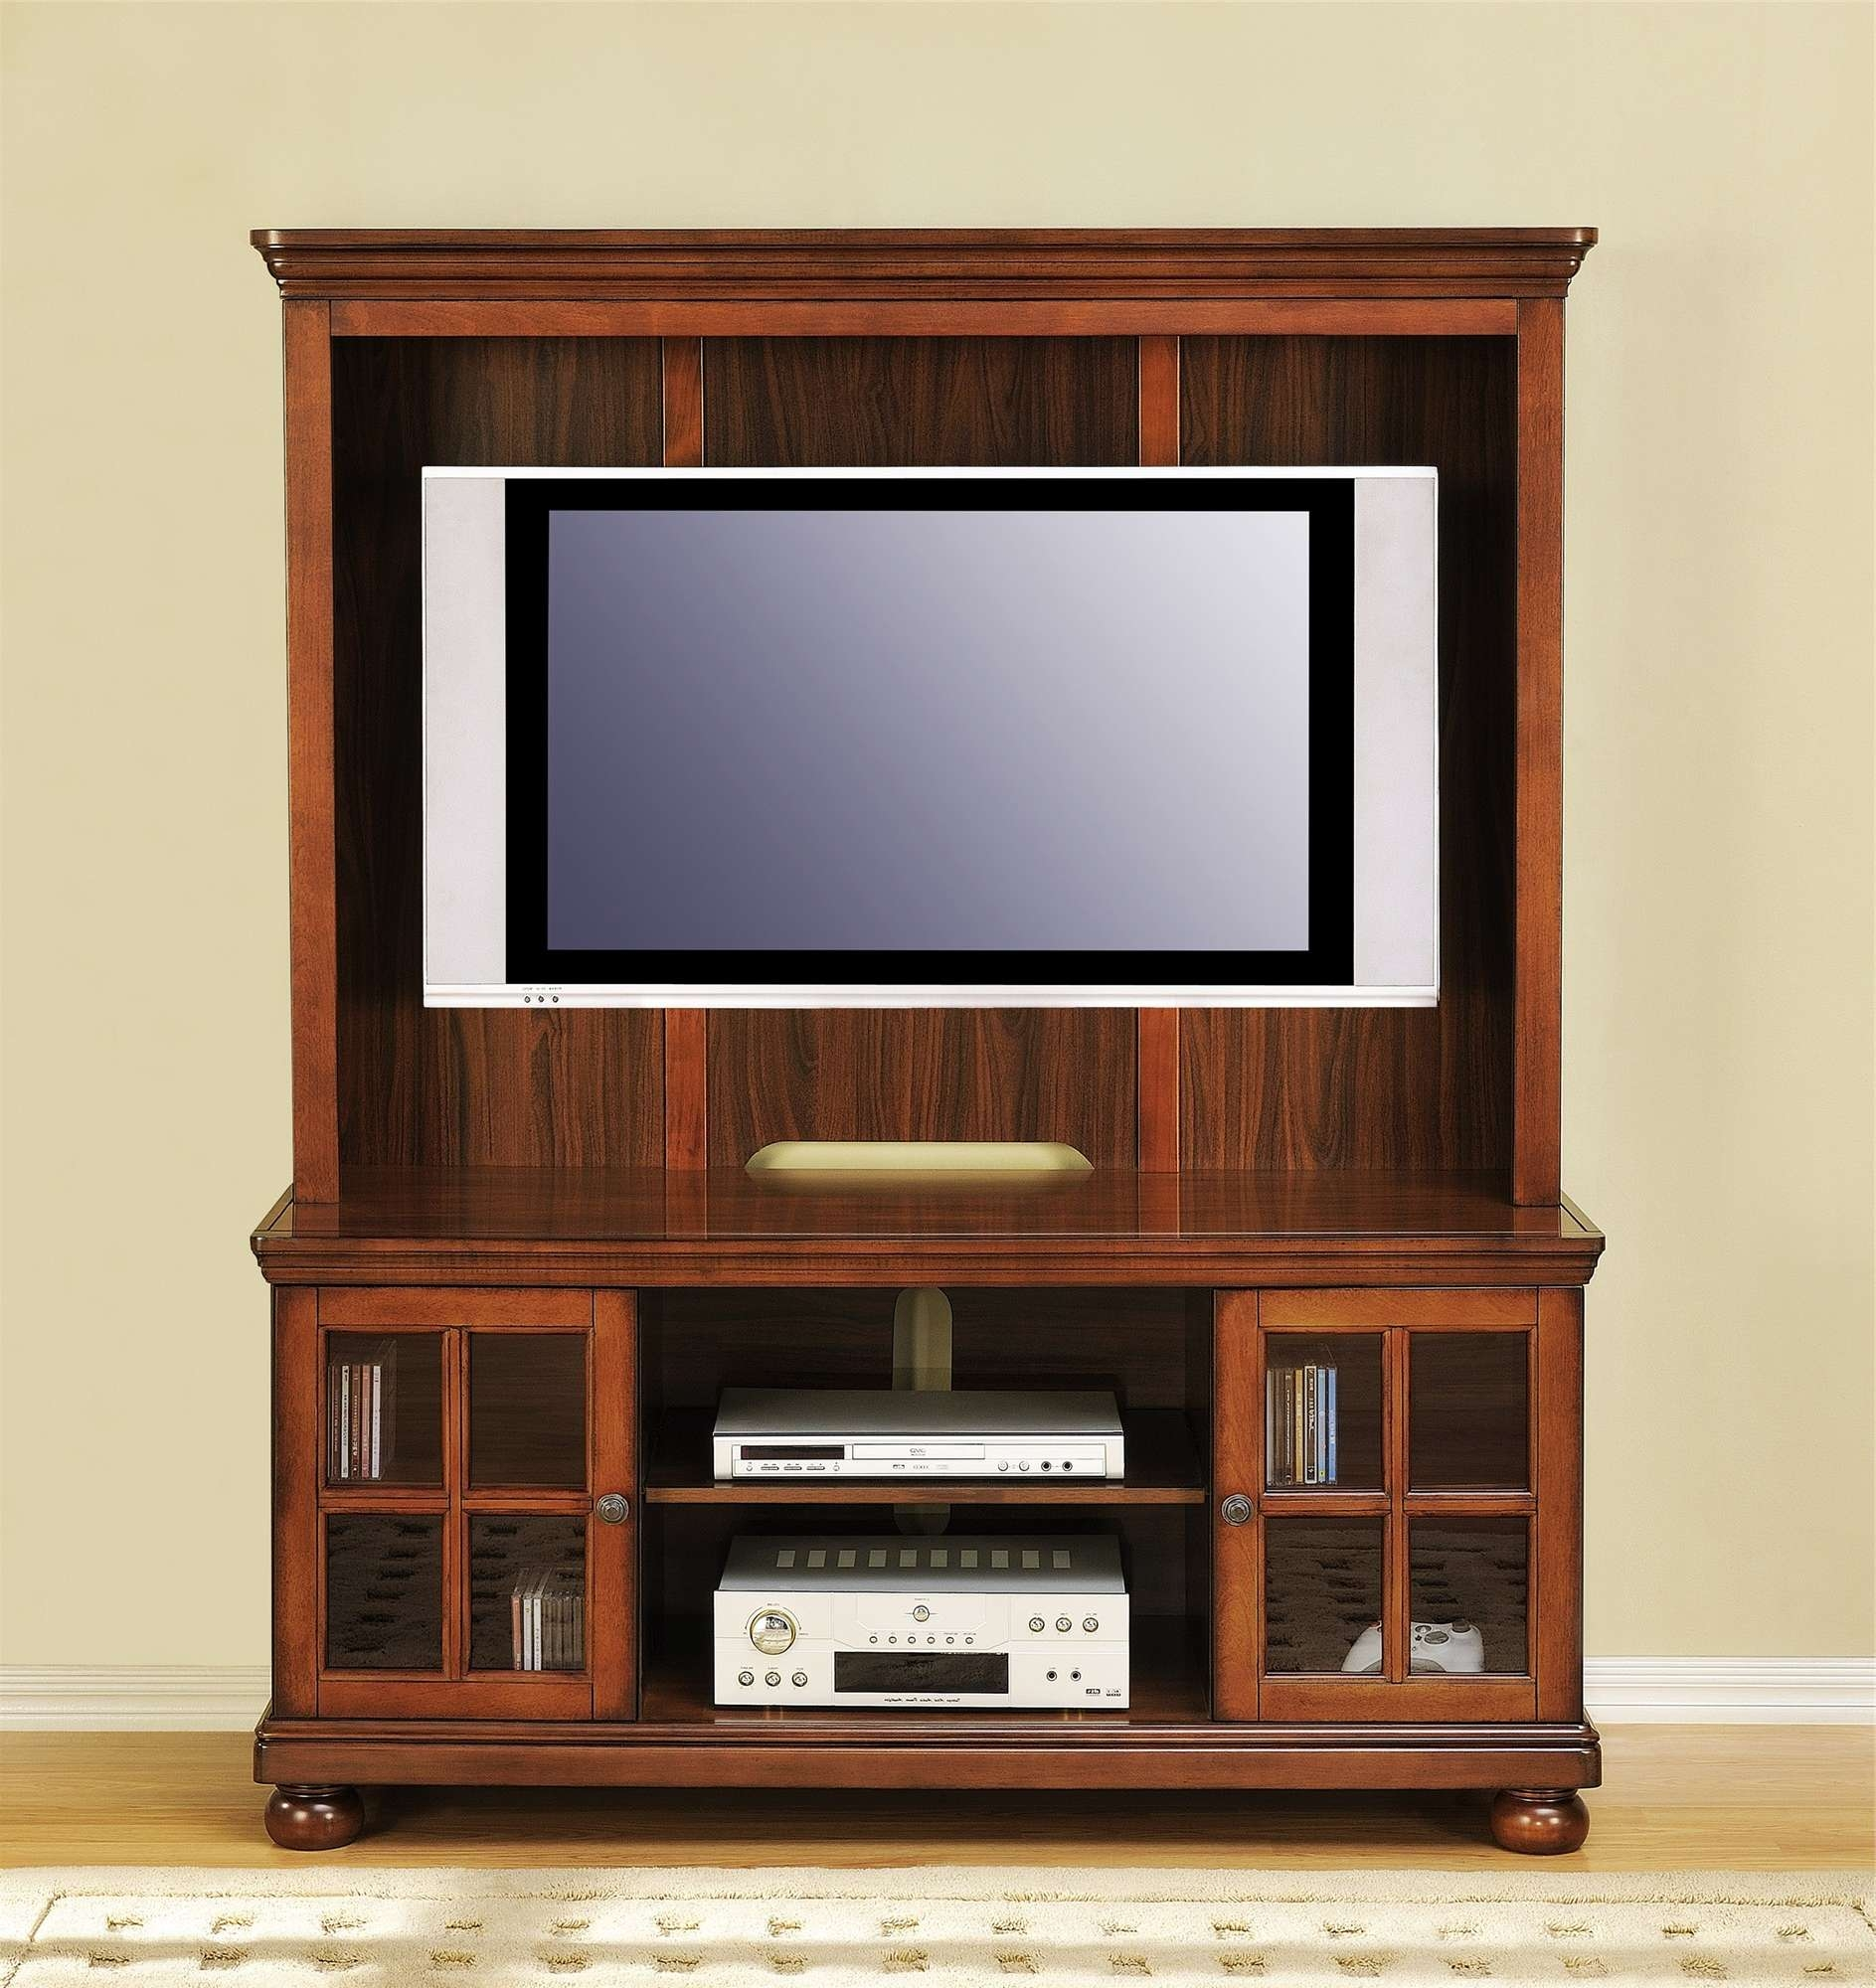 Dark Brown Wooden Tv Cabinet With Door On The Floor Connected Pertaining To Enclosed Tv Cabinets For Flat Screens With Doors (View 7 of 20)